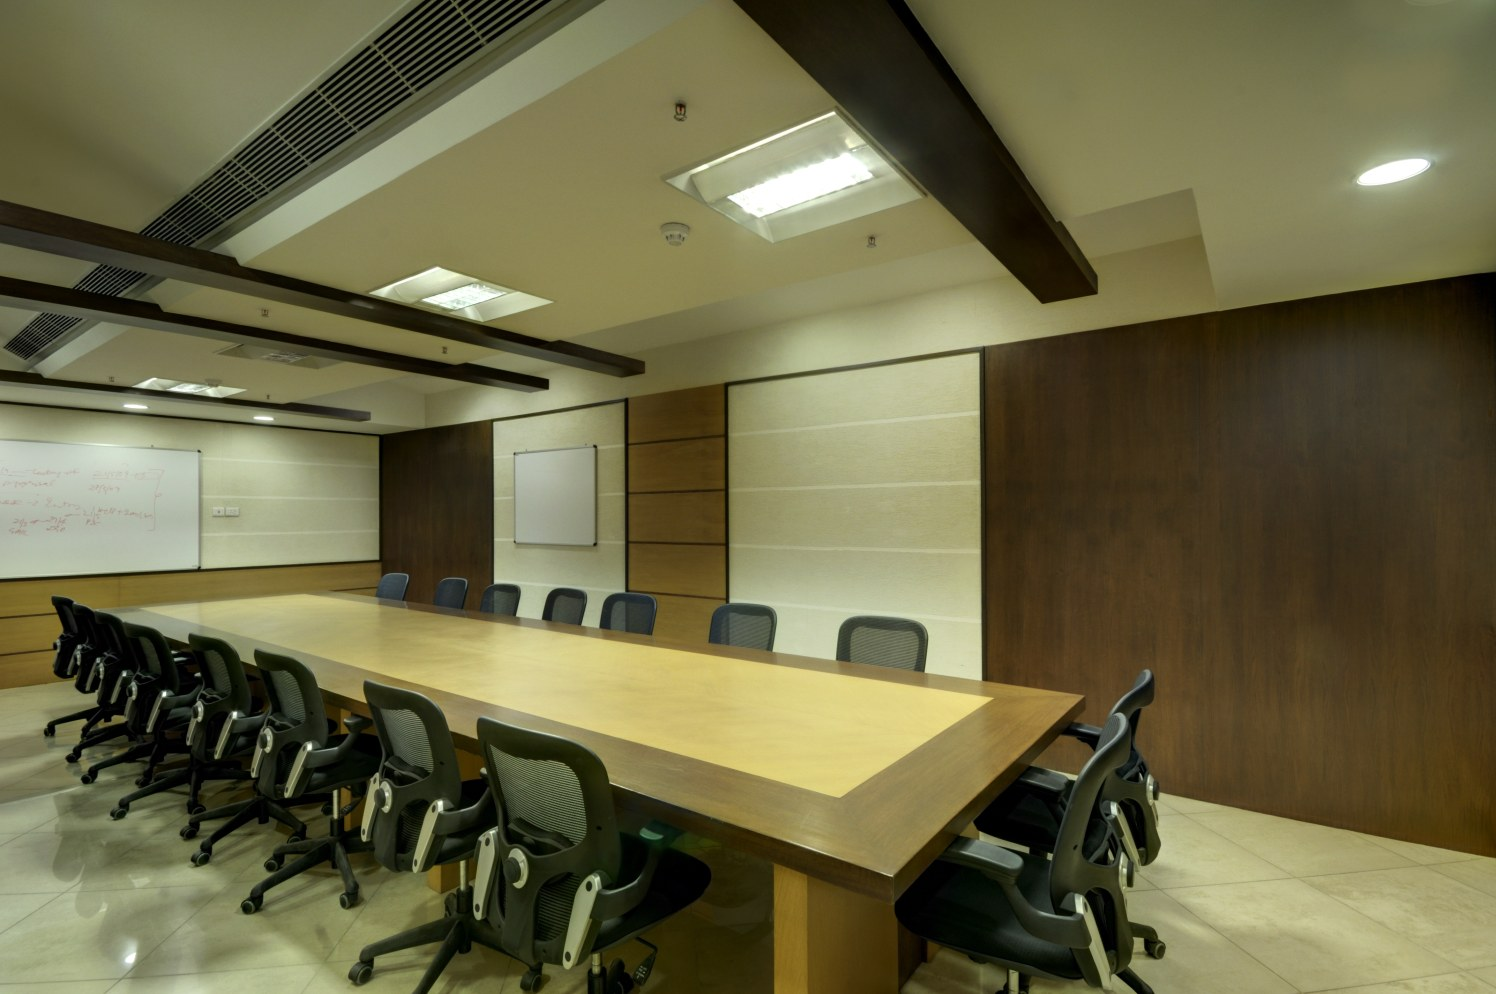 Formal Conference Room by Vijay Kapur Designs Modern | Interior Design Photos & Ideas